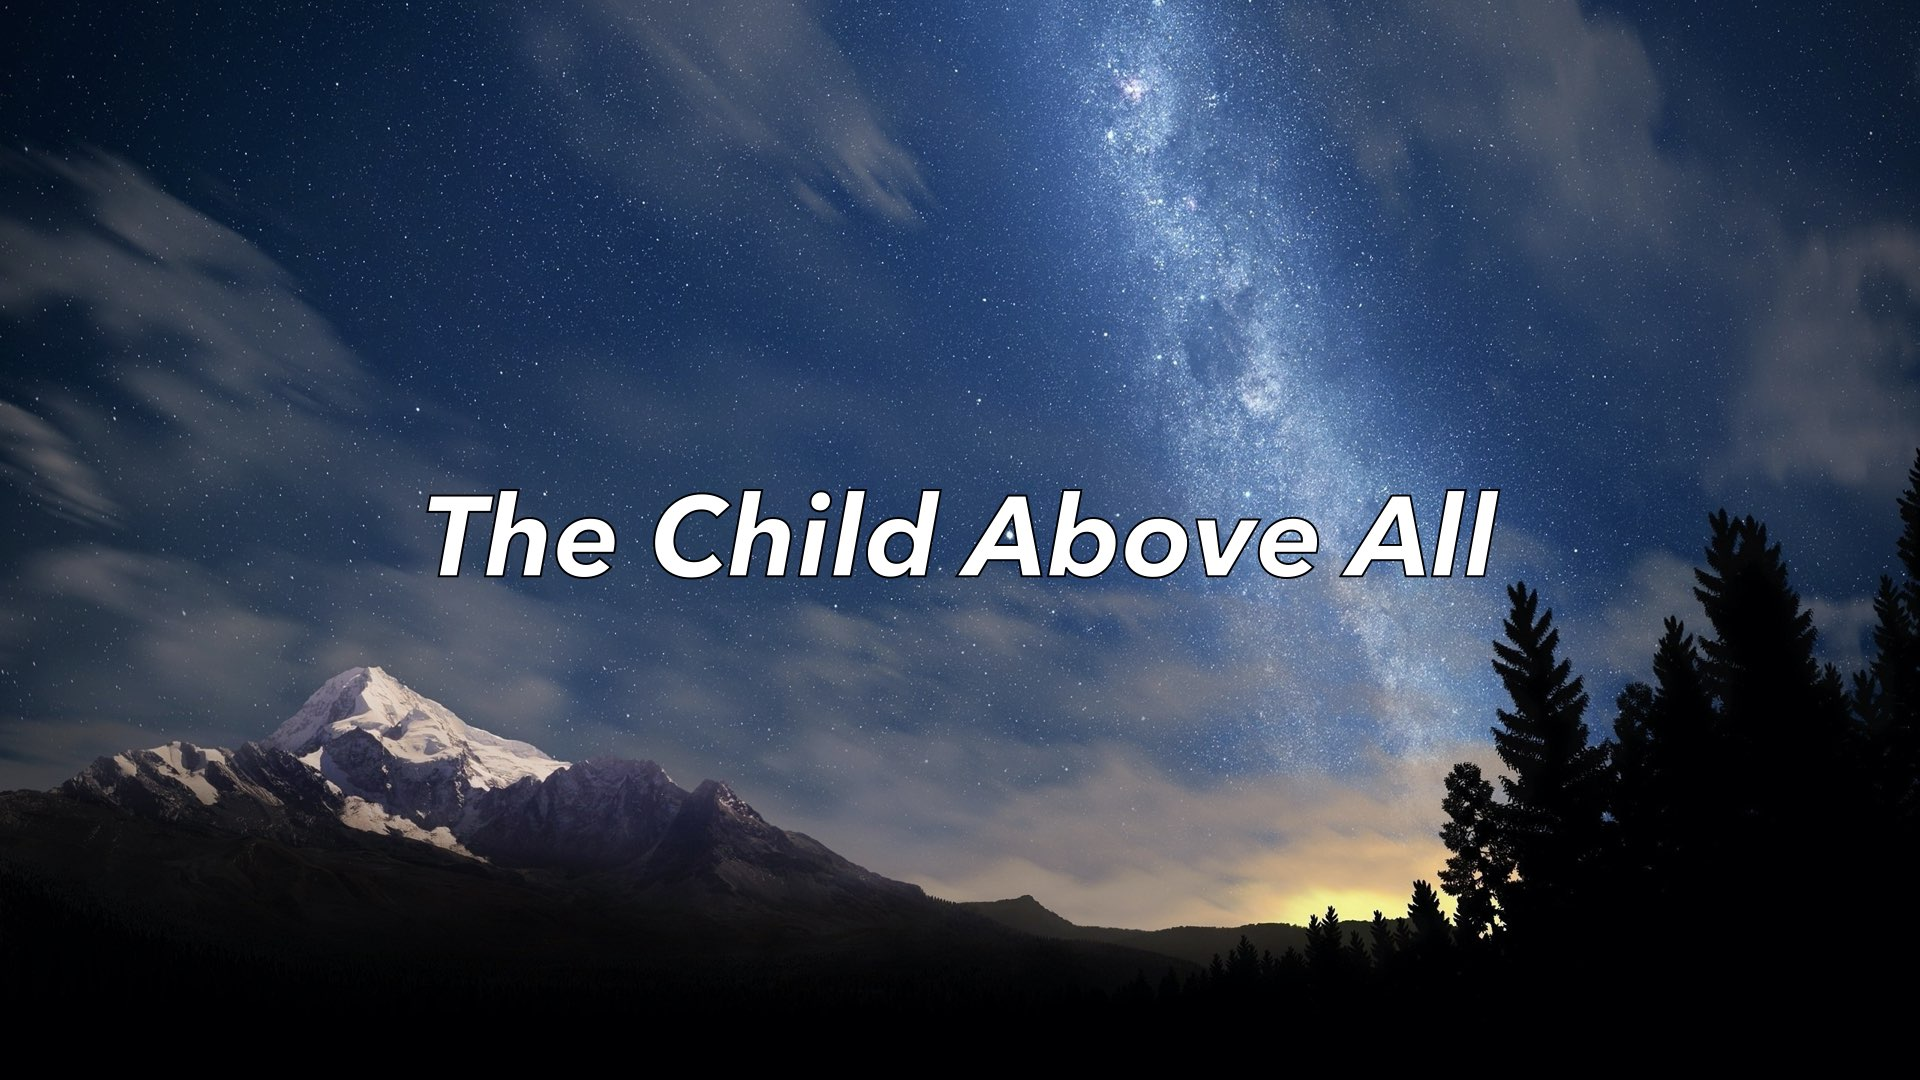 The Child Above All